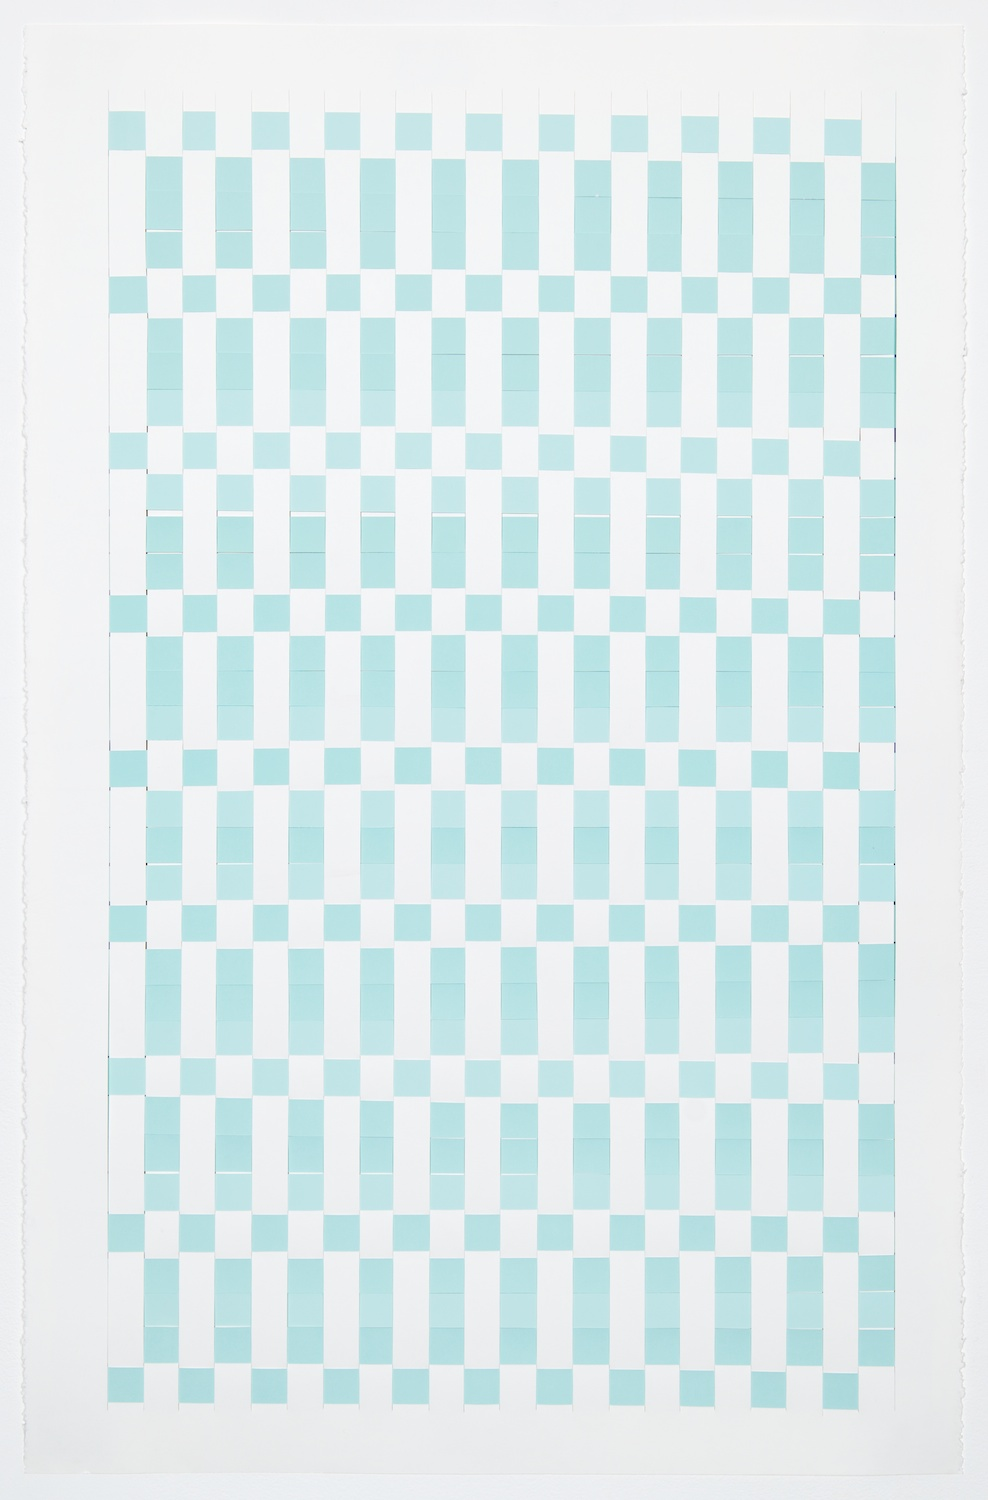 Michelle Graber  Untitled  2013 Paper and Color-aid 40h x 26w in MGrab299